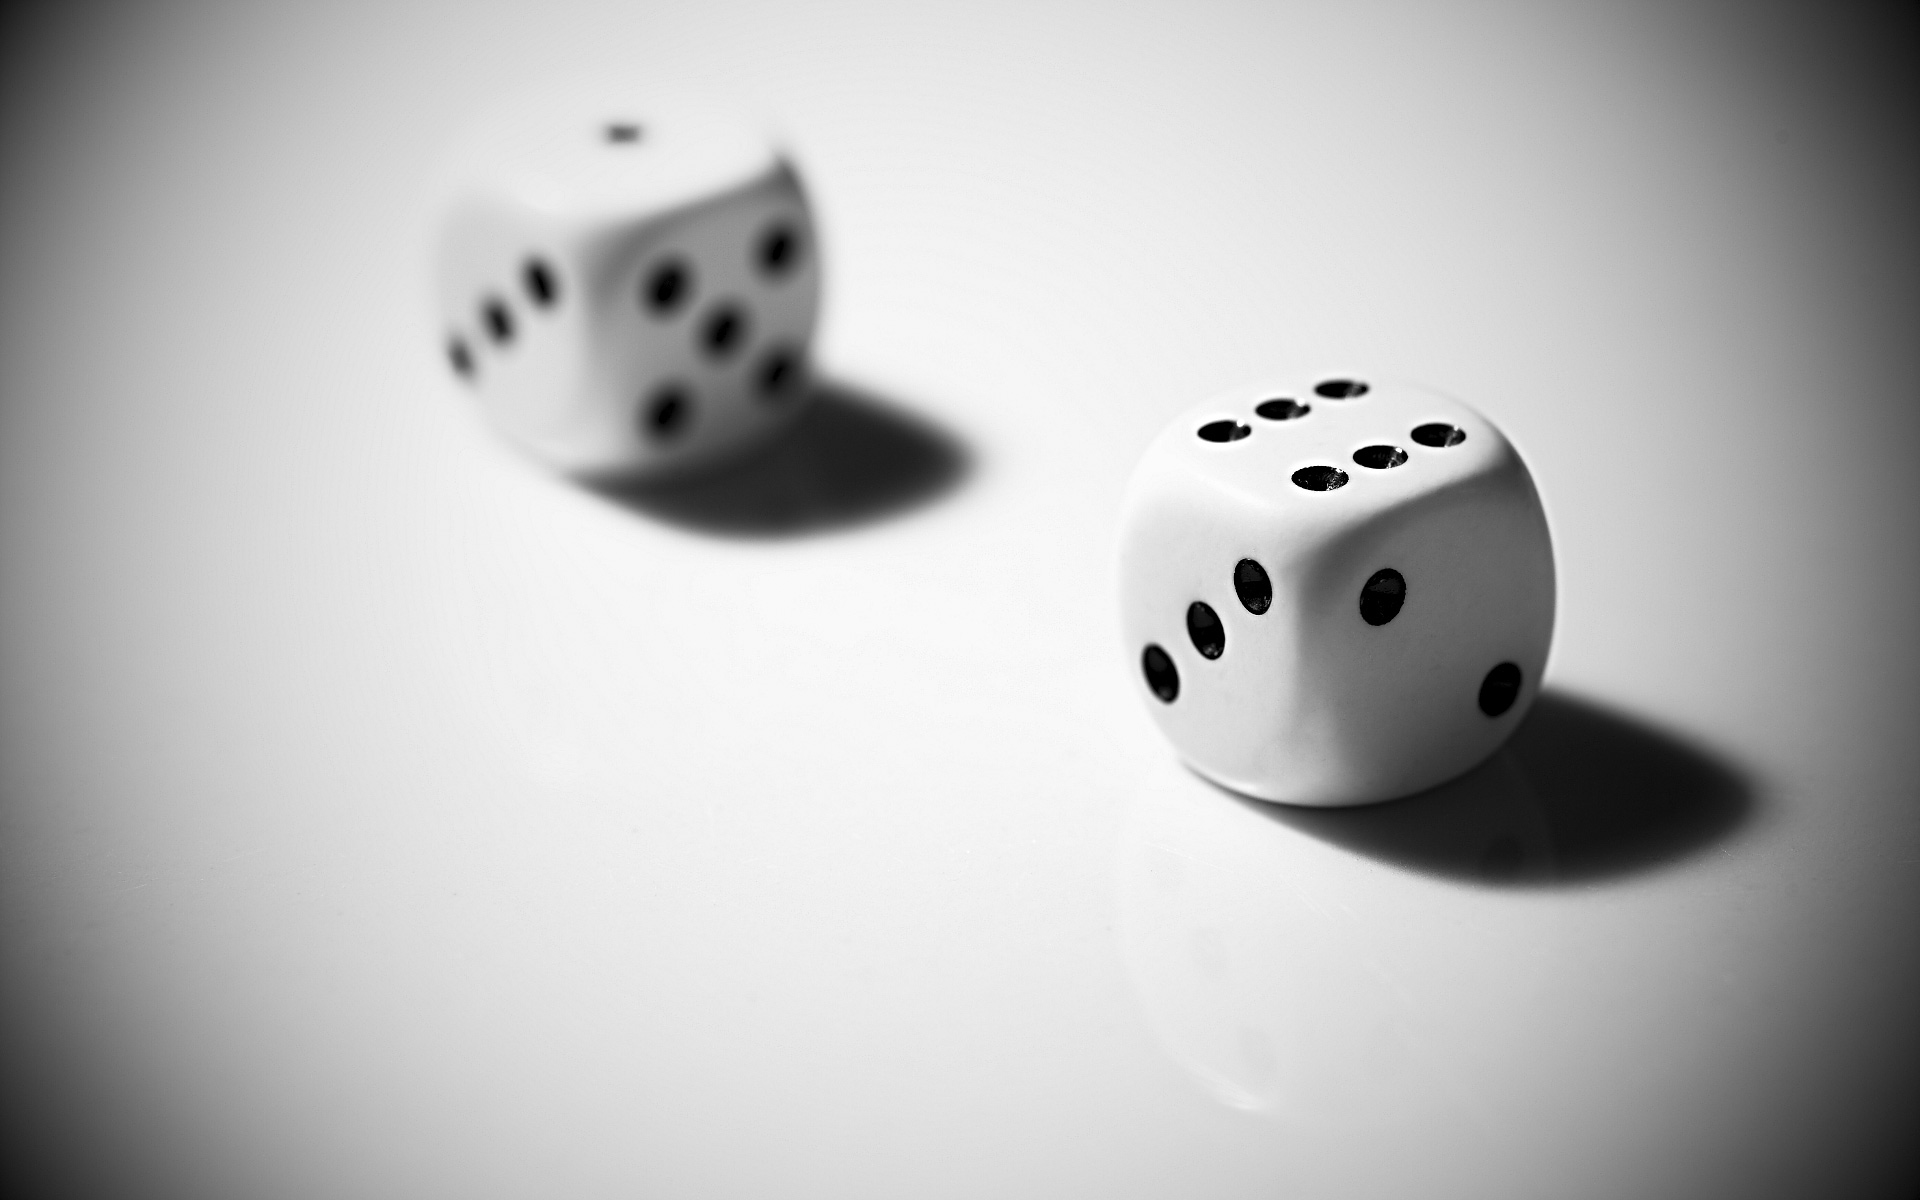 Dice Black and White Picture | 1920 x 1200 | Download | Close